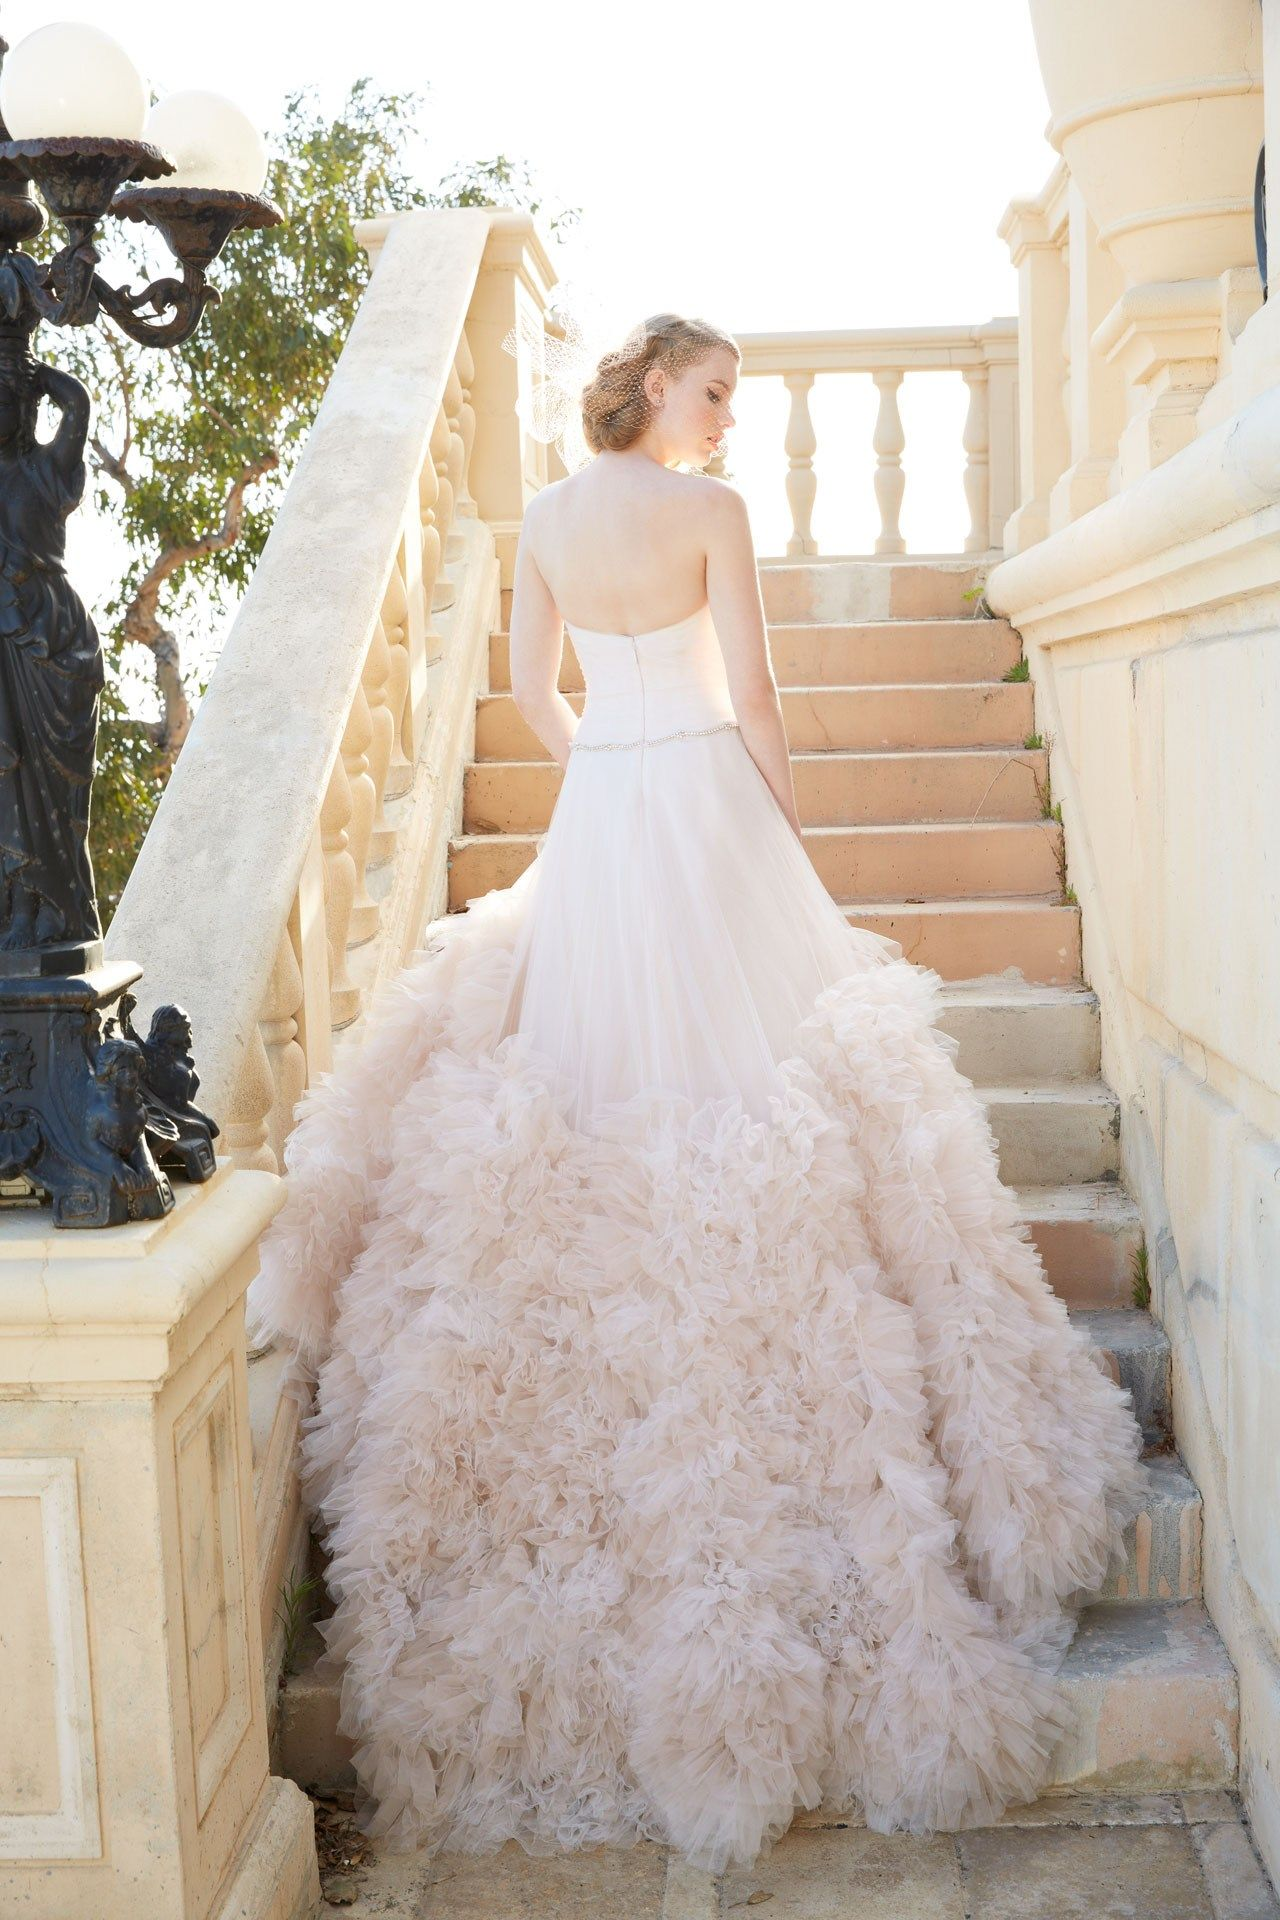 Used wedding dresses in michigan  Wedding Dresses  The Ultimate Gallery BridesMagazine  Uk